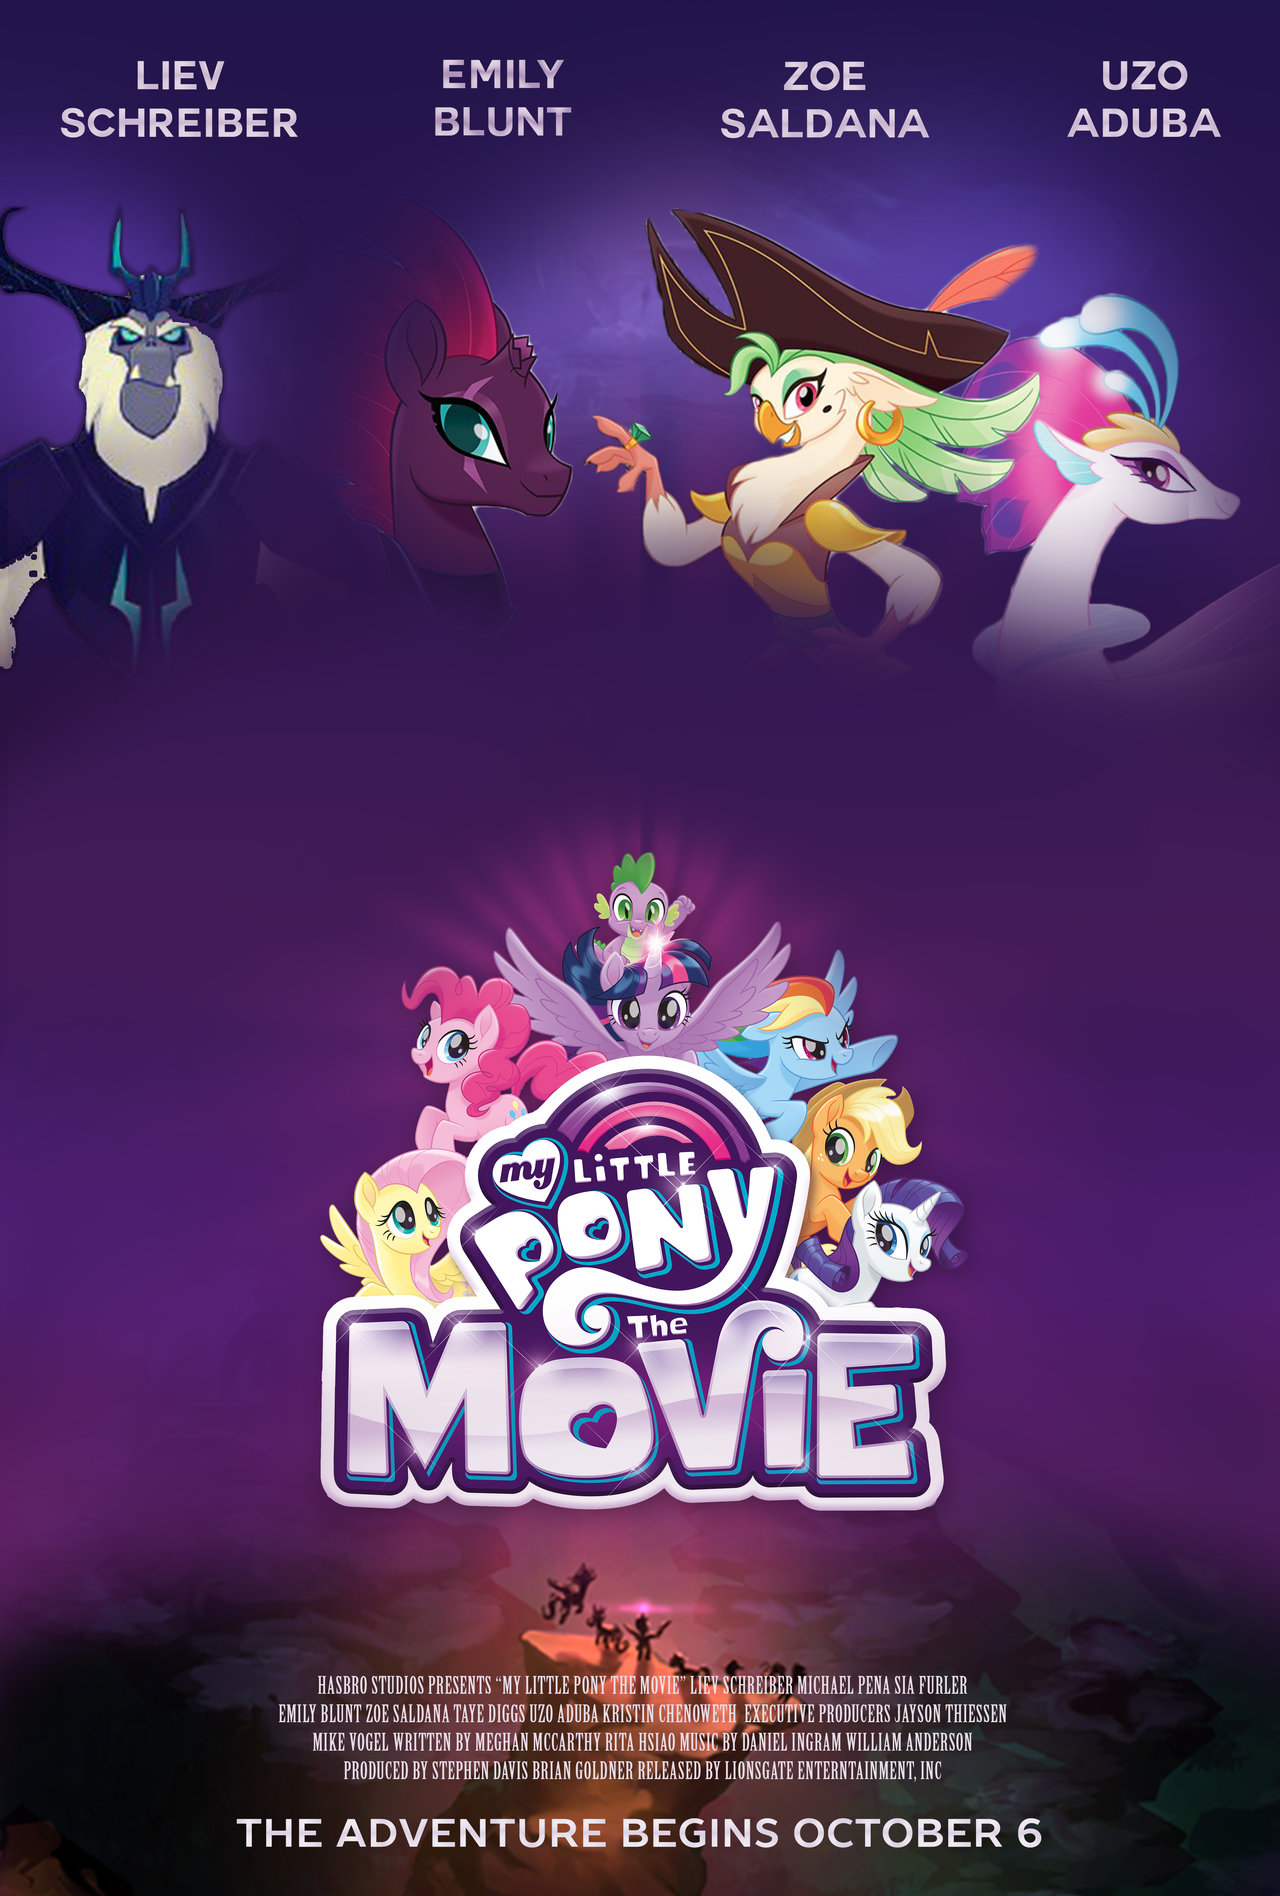 https://mlpforums.com/uploads/post_images/sig-4815951.my_little_pony__the_movie_2017_by_bronyno786-dazdned.jpg